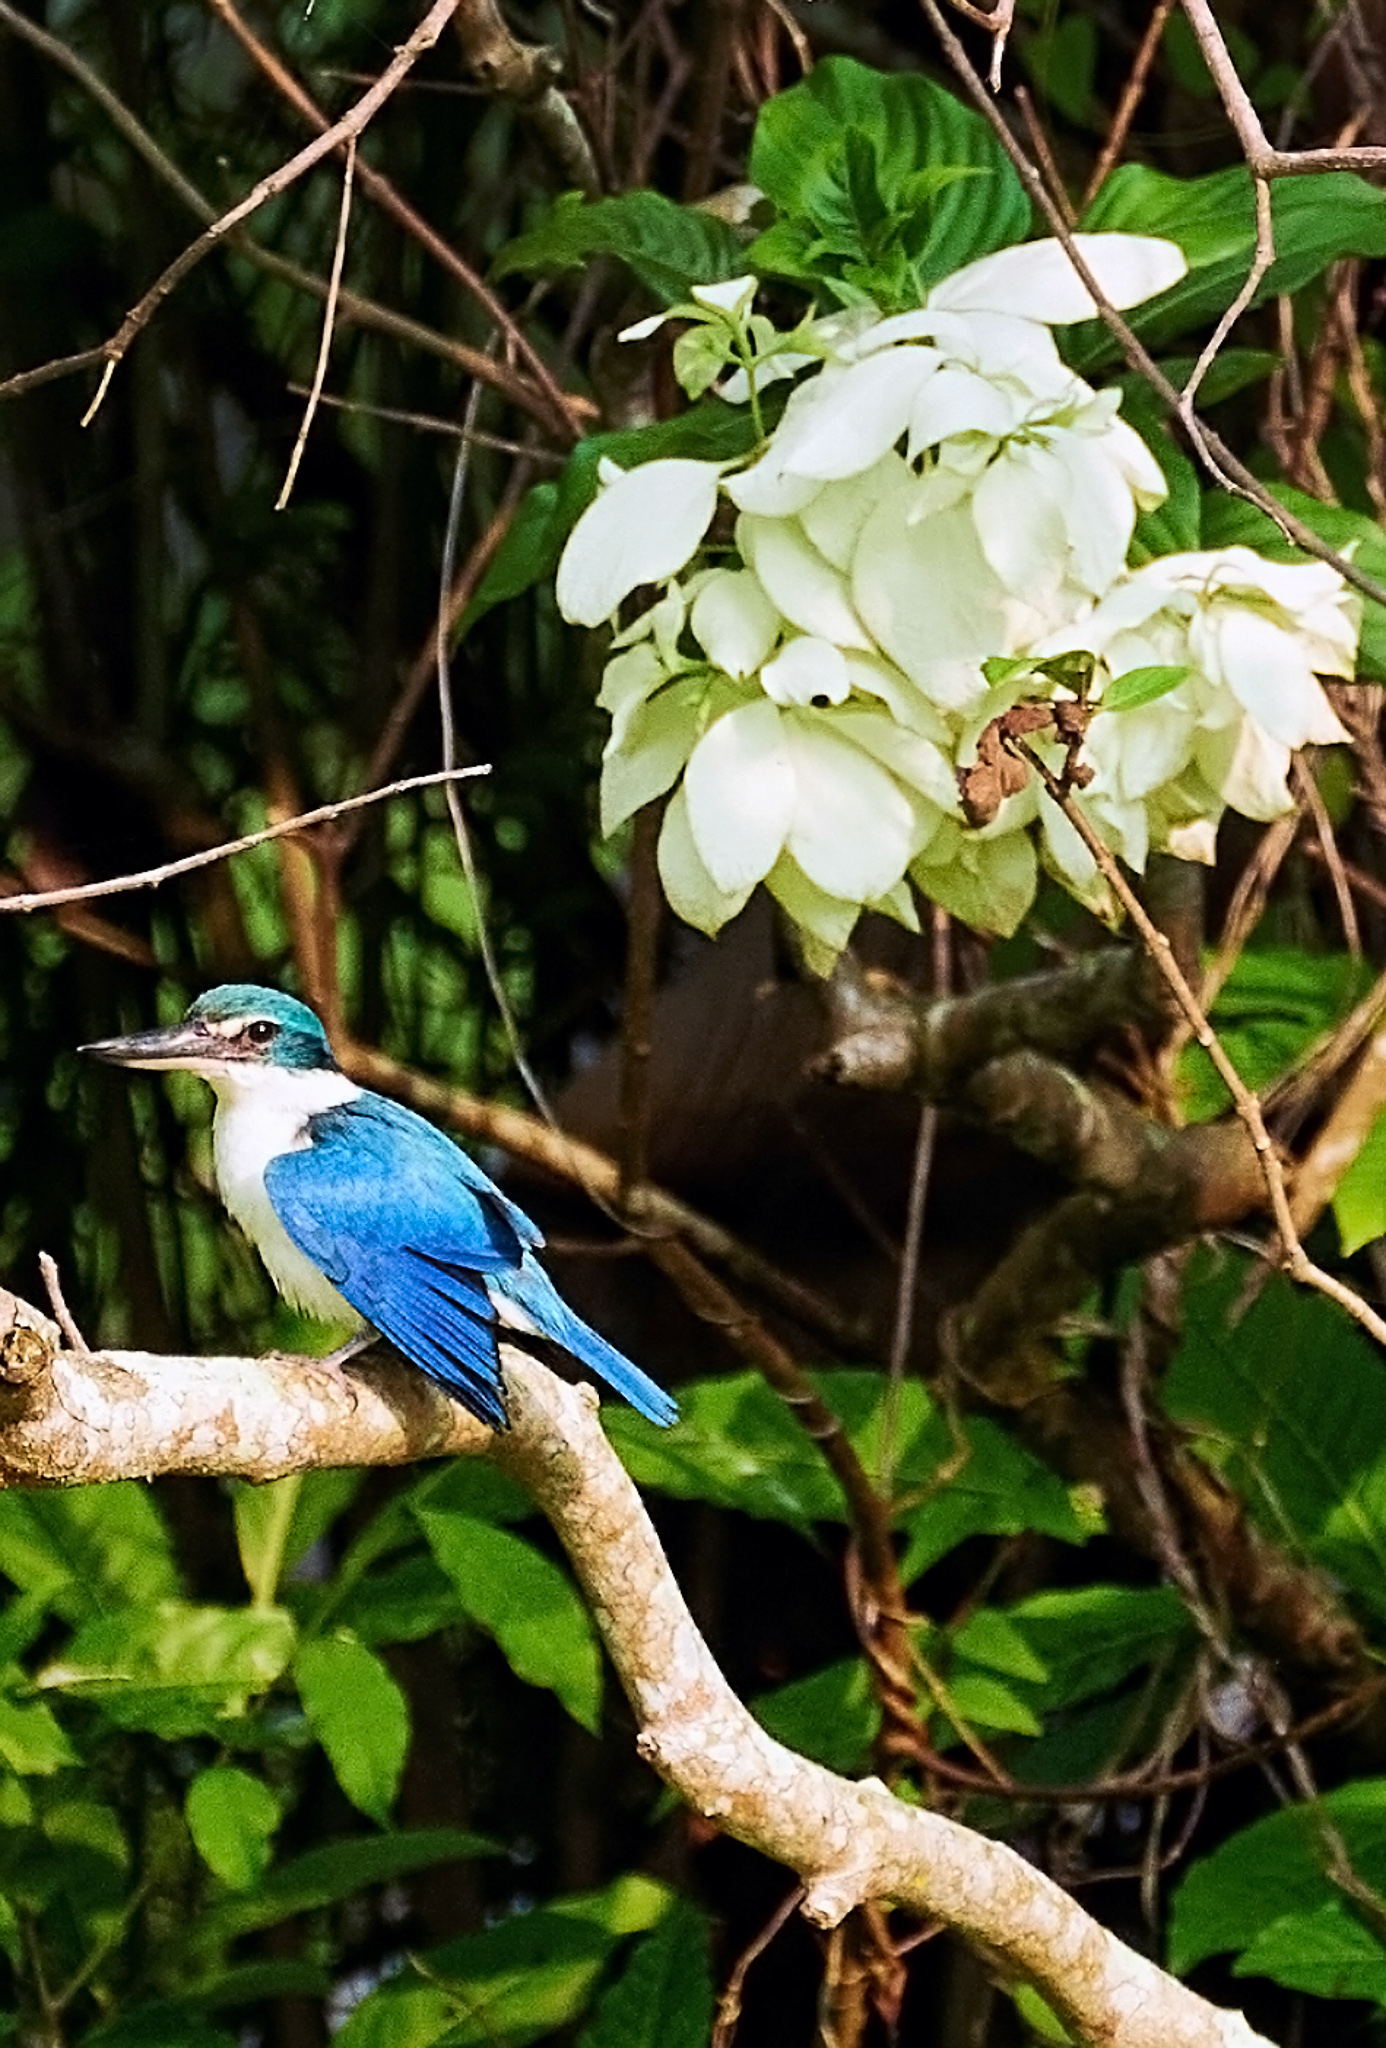 Collared Kingfisher at the Gardens By the Bay, Singapore